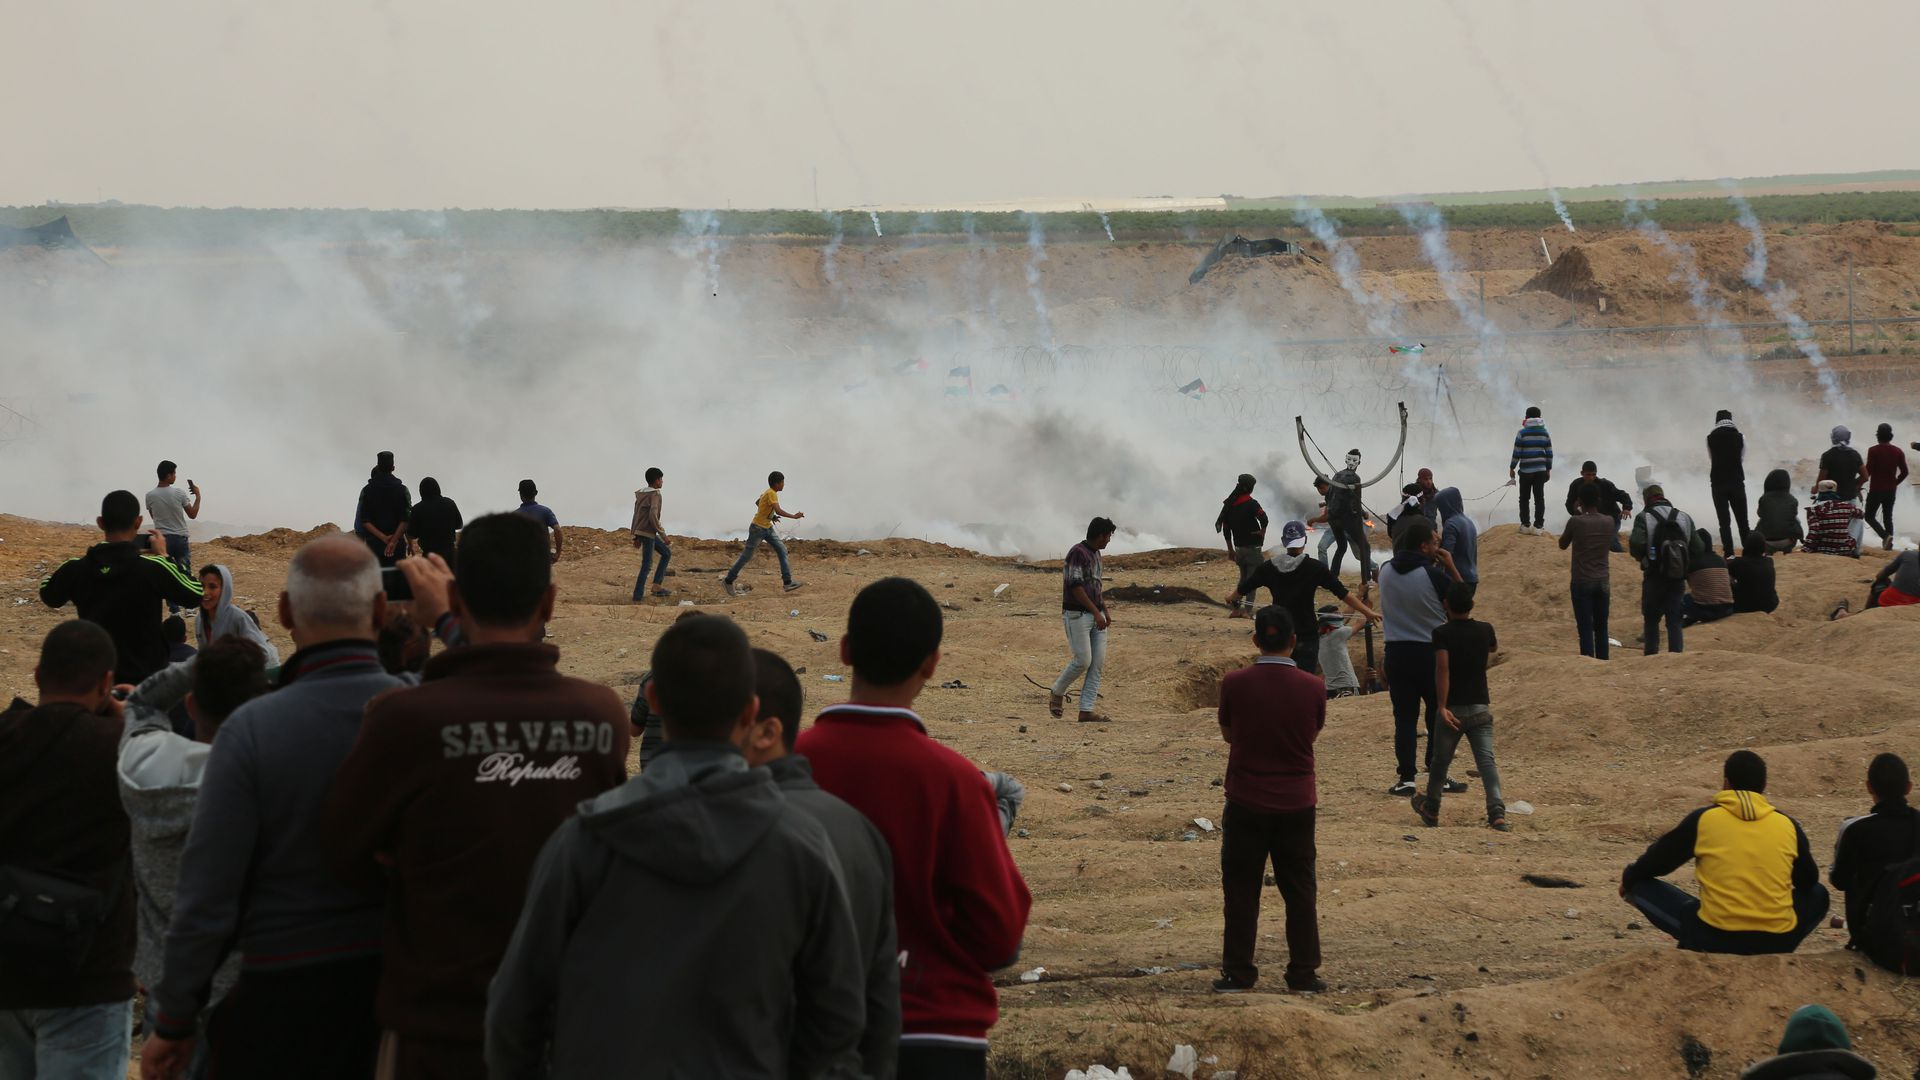 Tear gas canisters are fired by Israeli troops at Palestinian demonstrators on Friday.